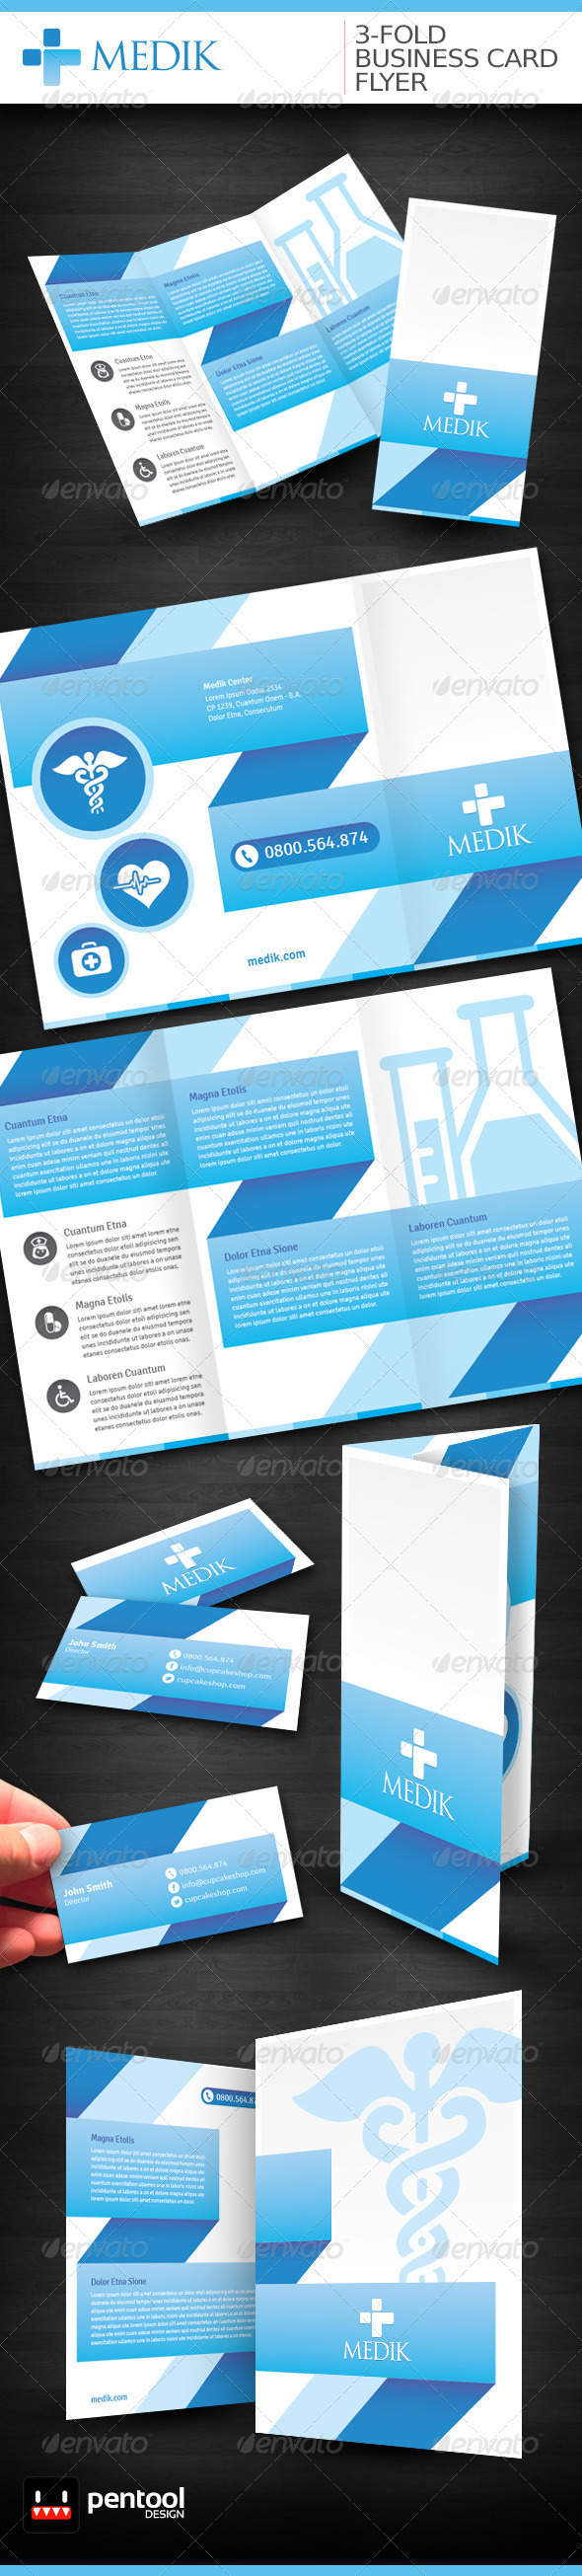 Medik 3 foldbusiness cardflyer folded business cards icon font flyer reheart Gallery